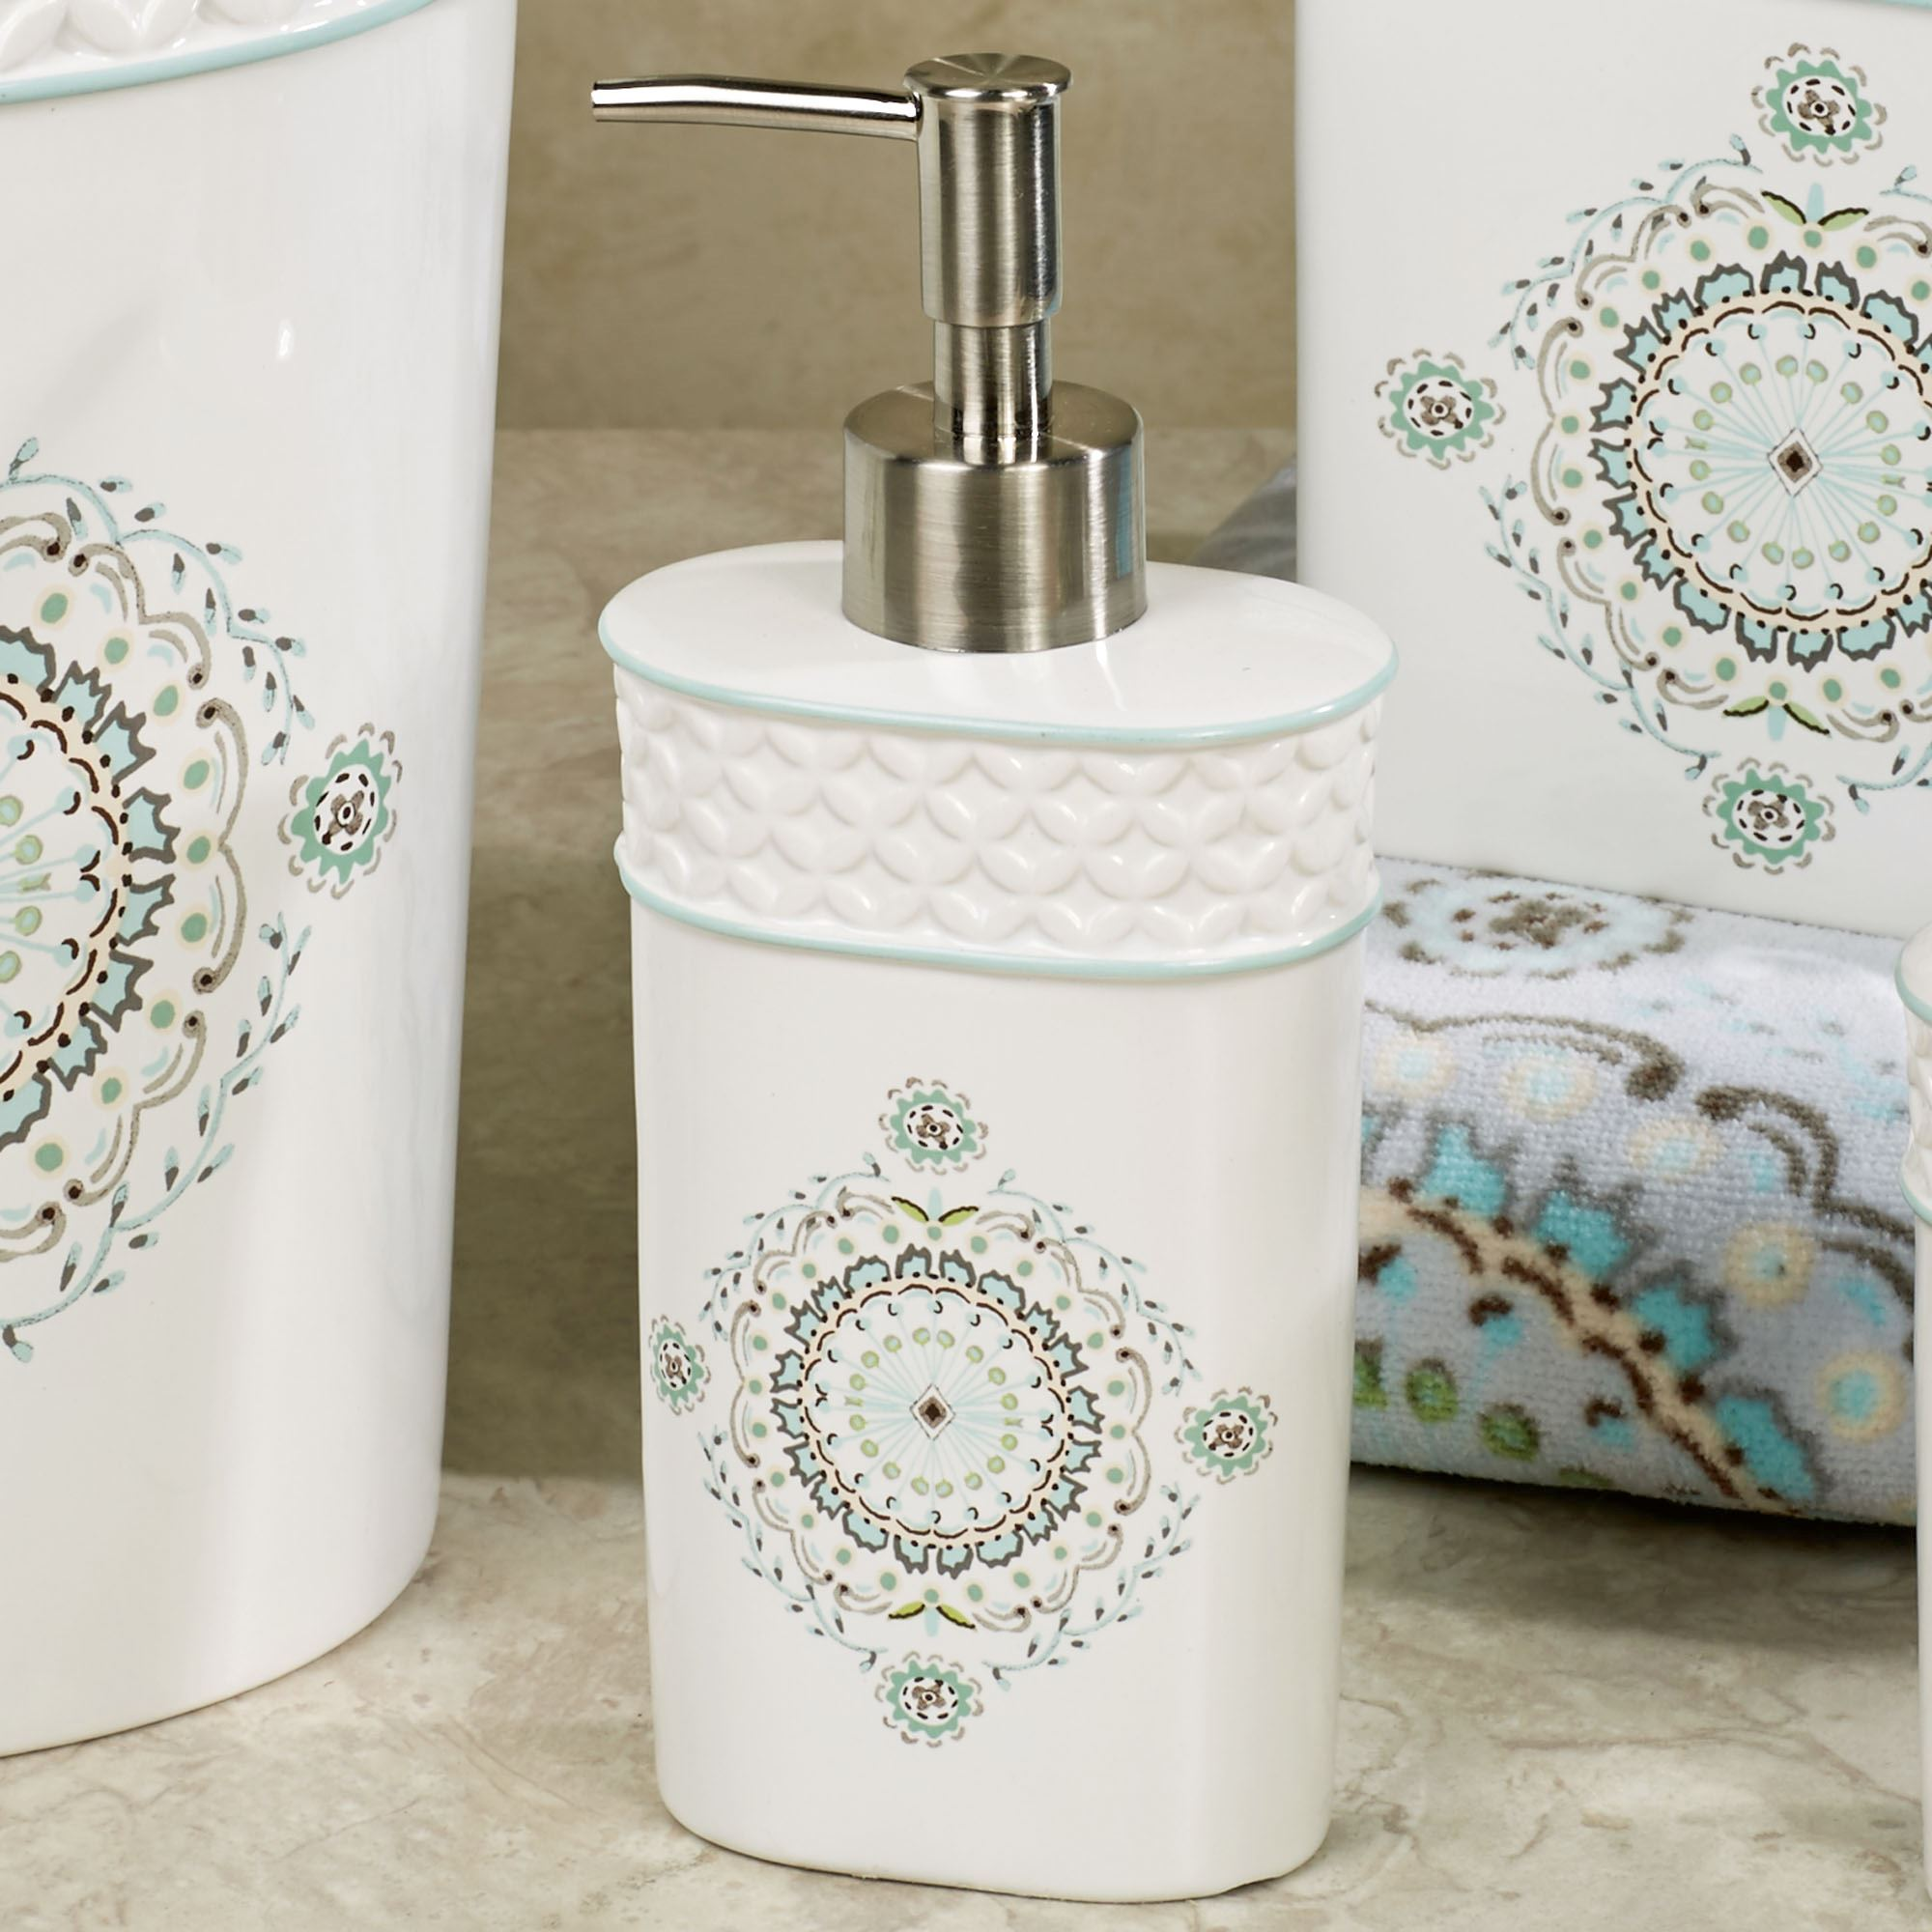 Camden Off White Ceramic Bath Accessories by Dena Home